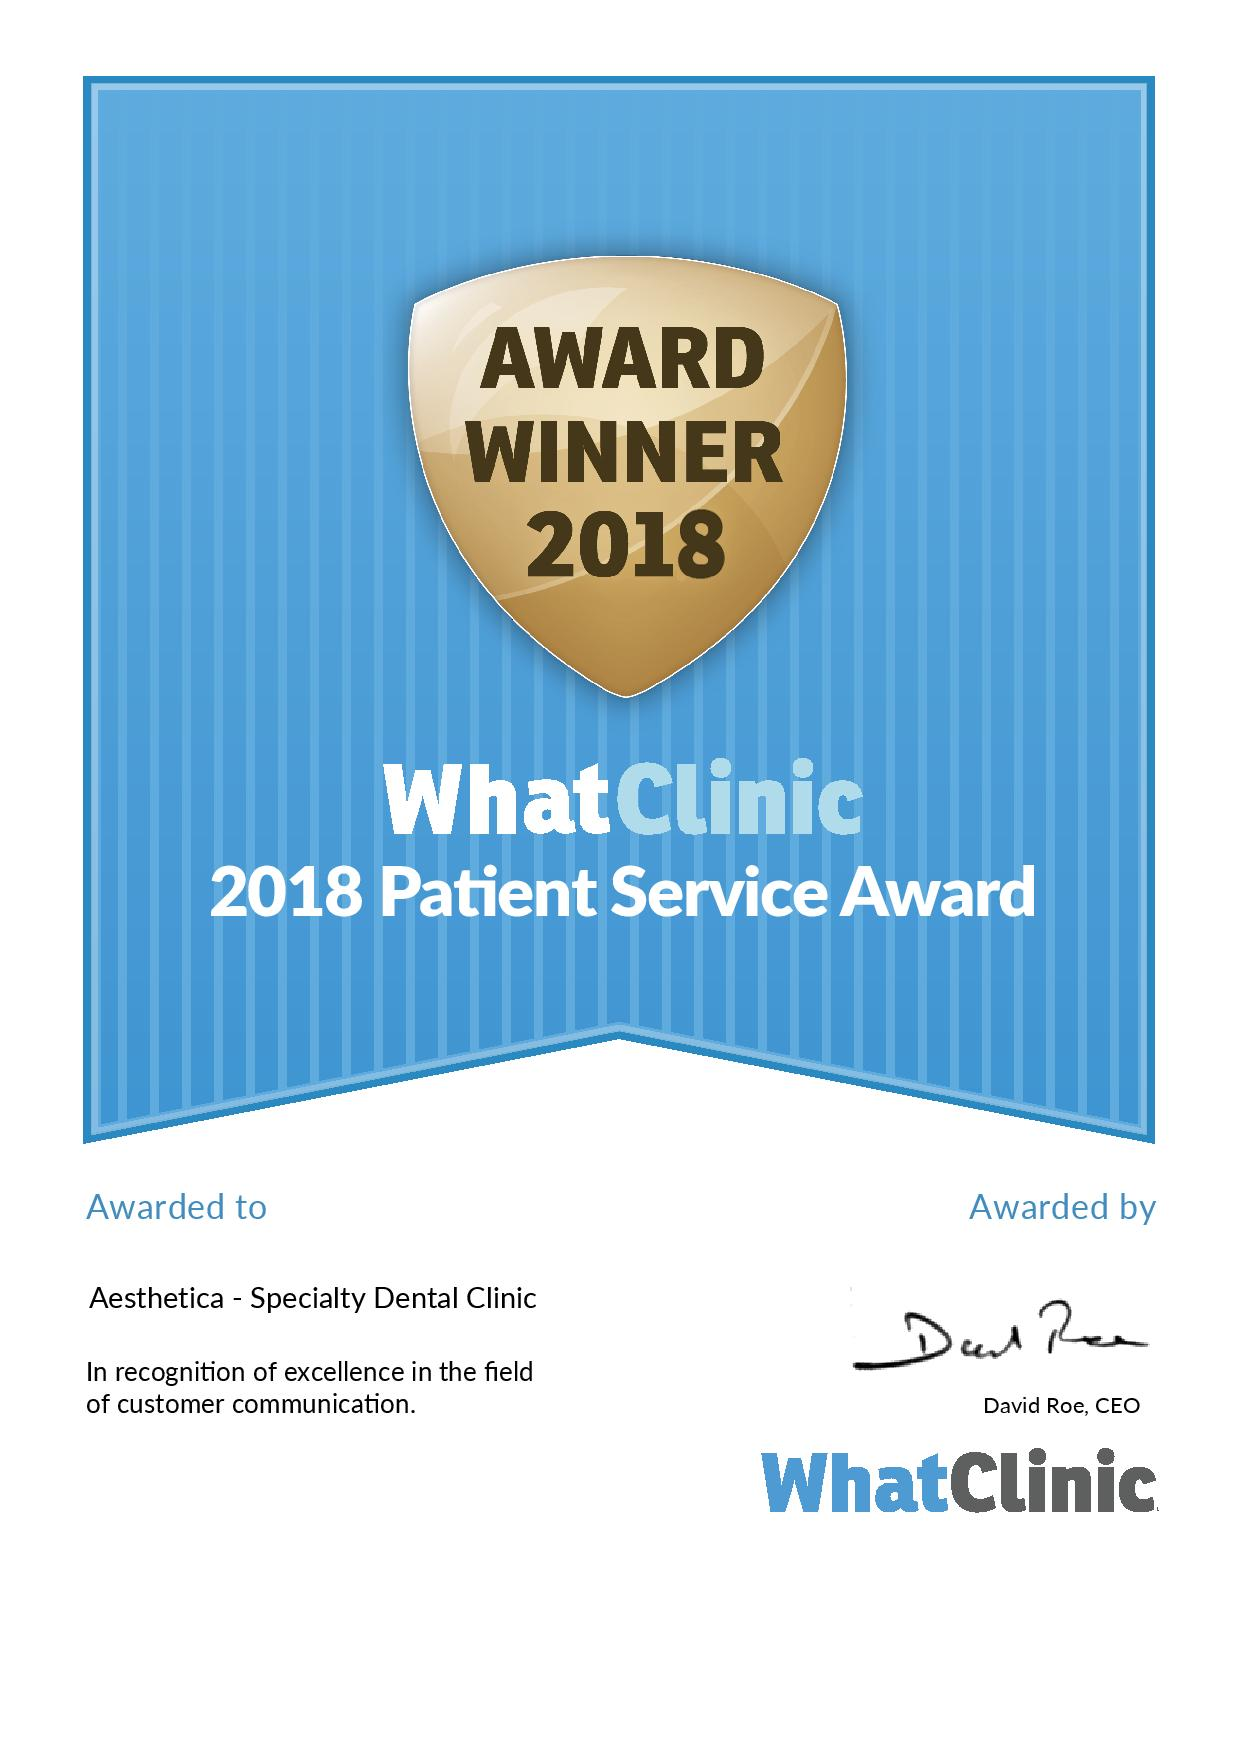 Whatclinic.com – Award Winner 2018